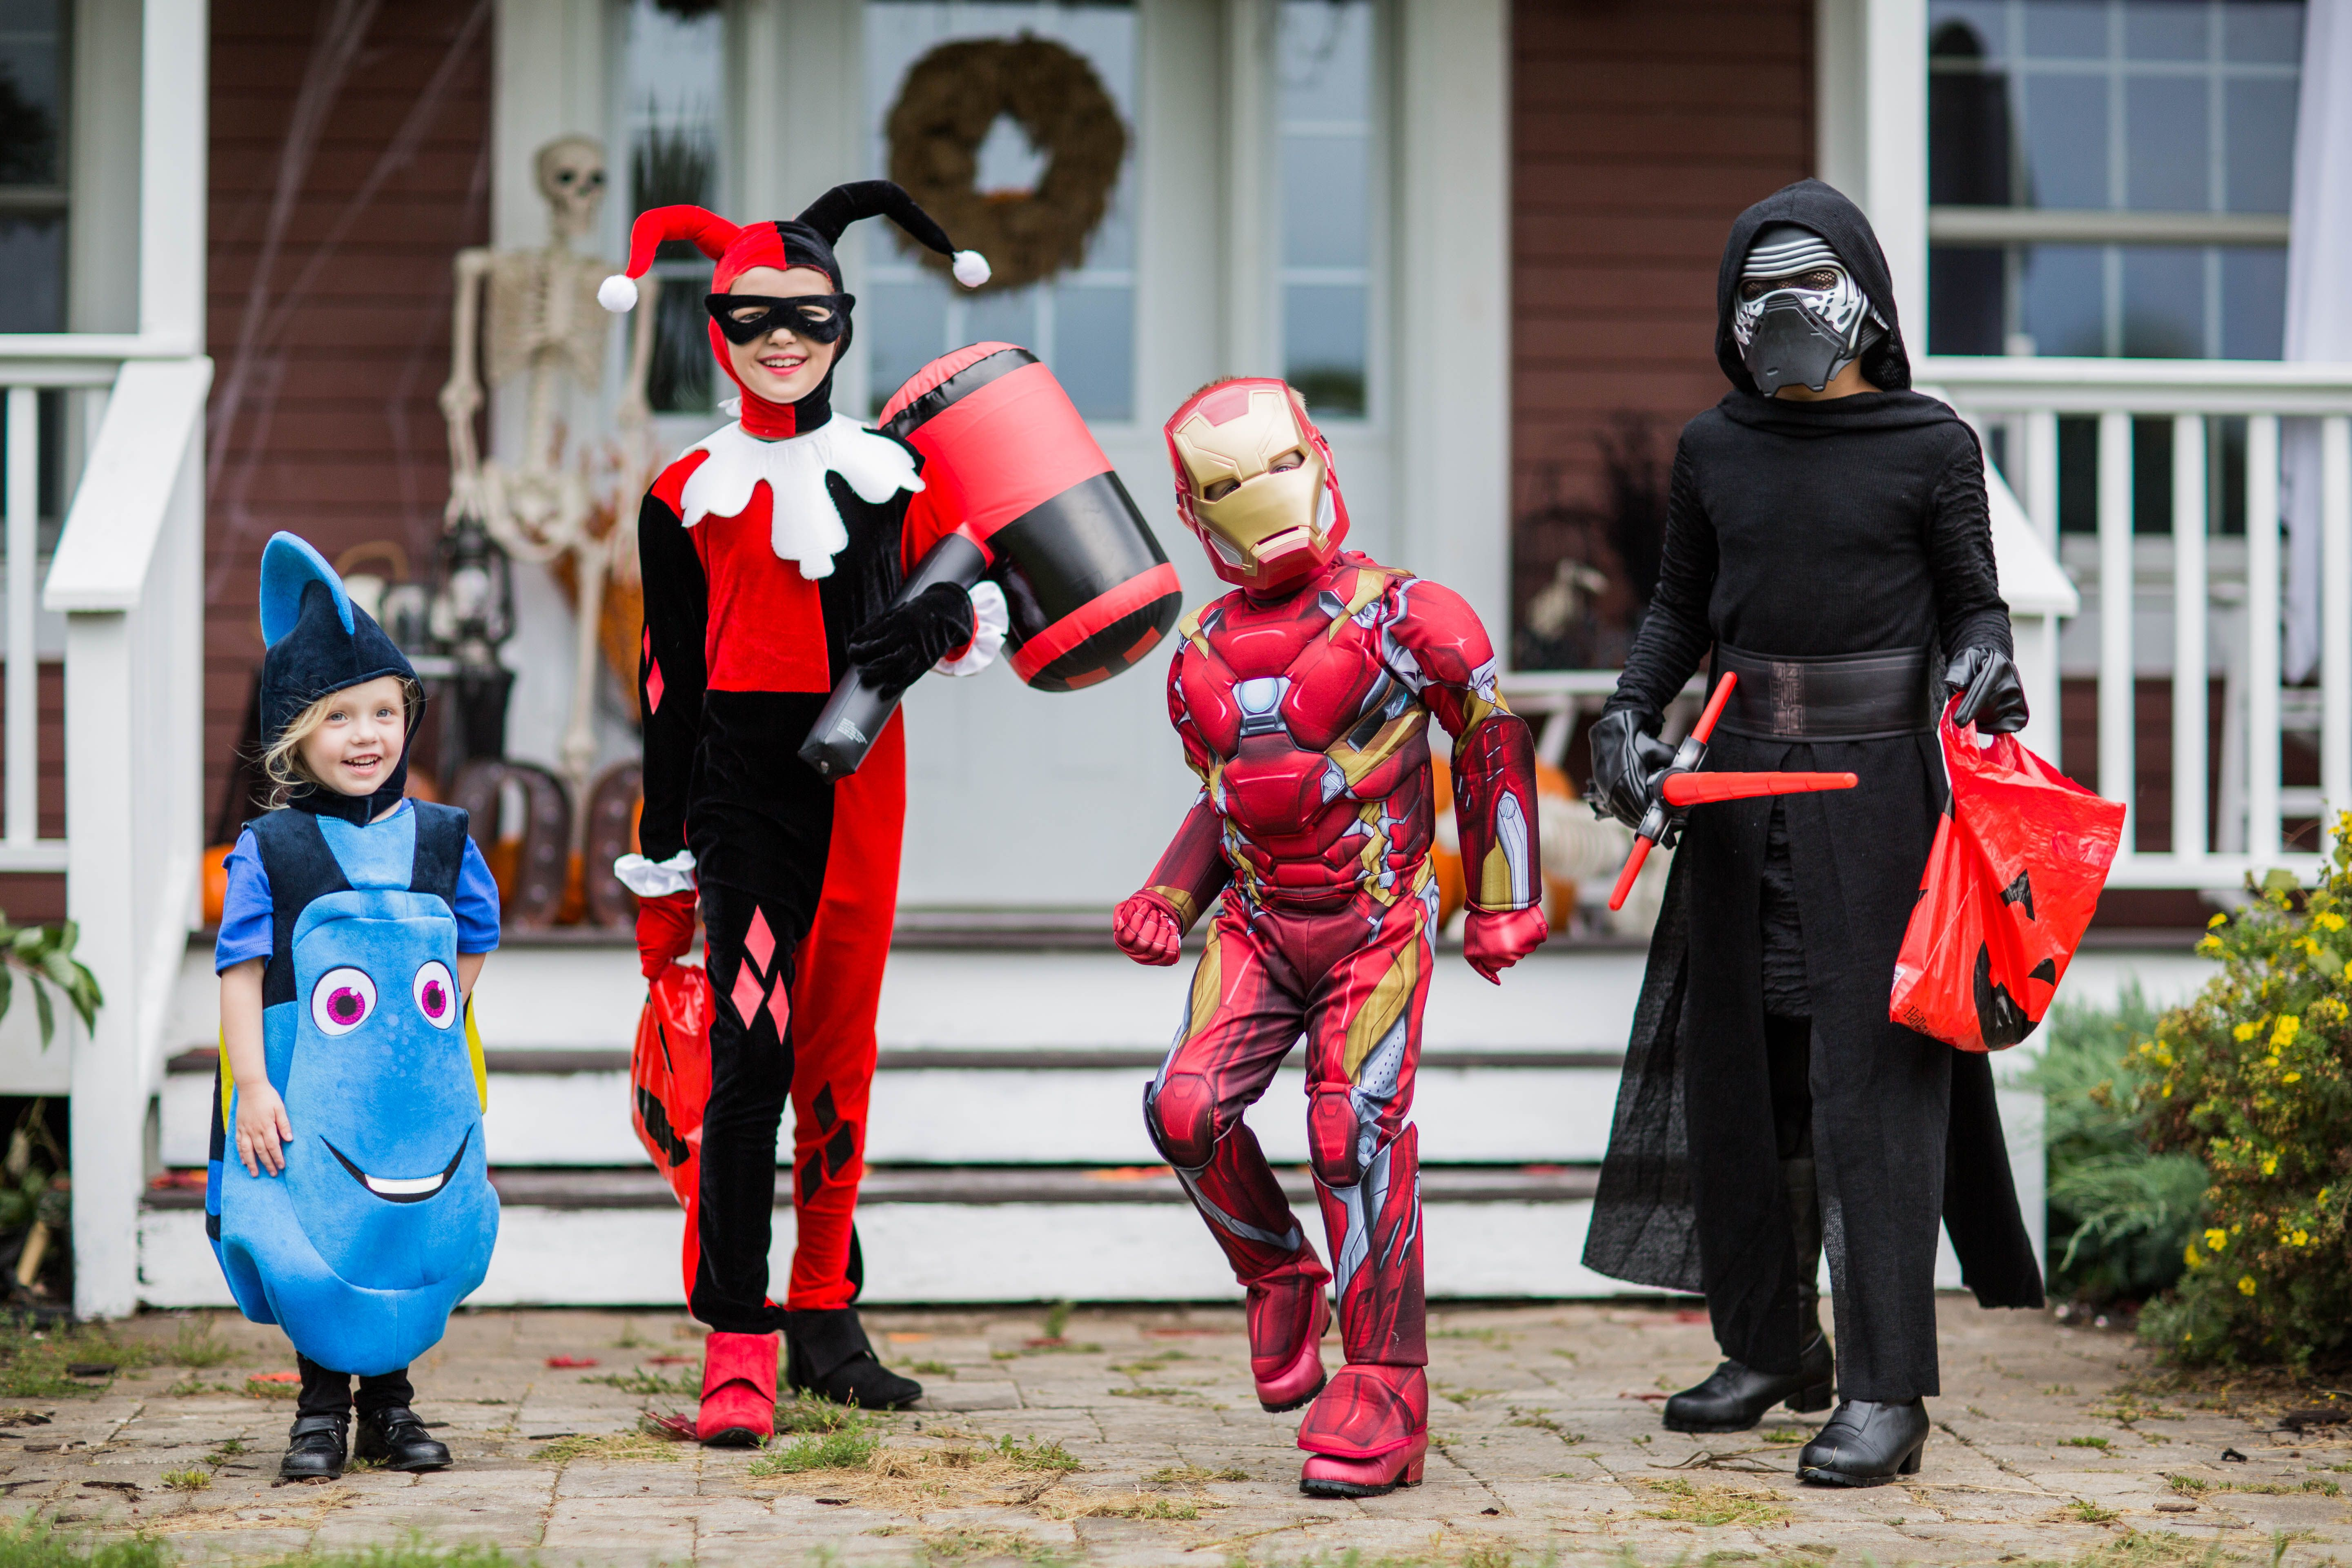 cute kids halloween costume ideas- get your trick-or-treat group